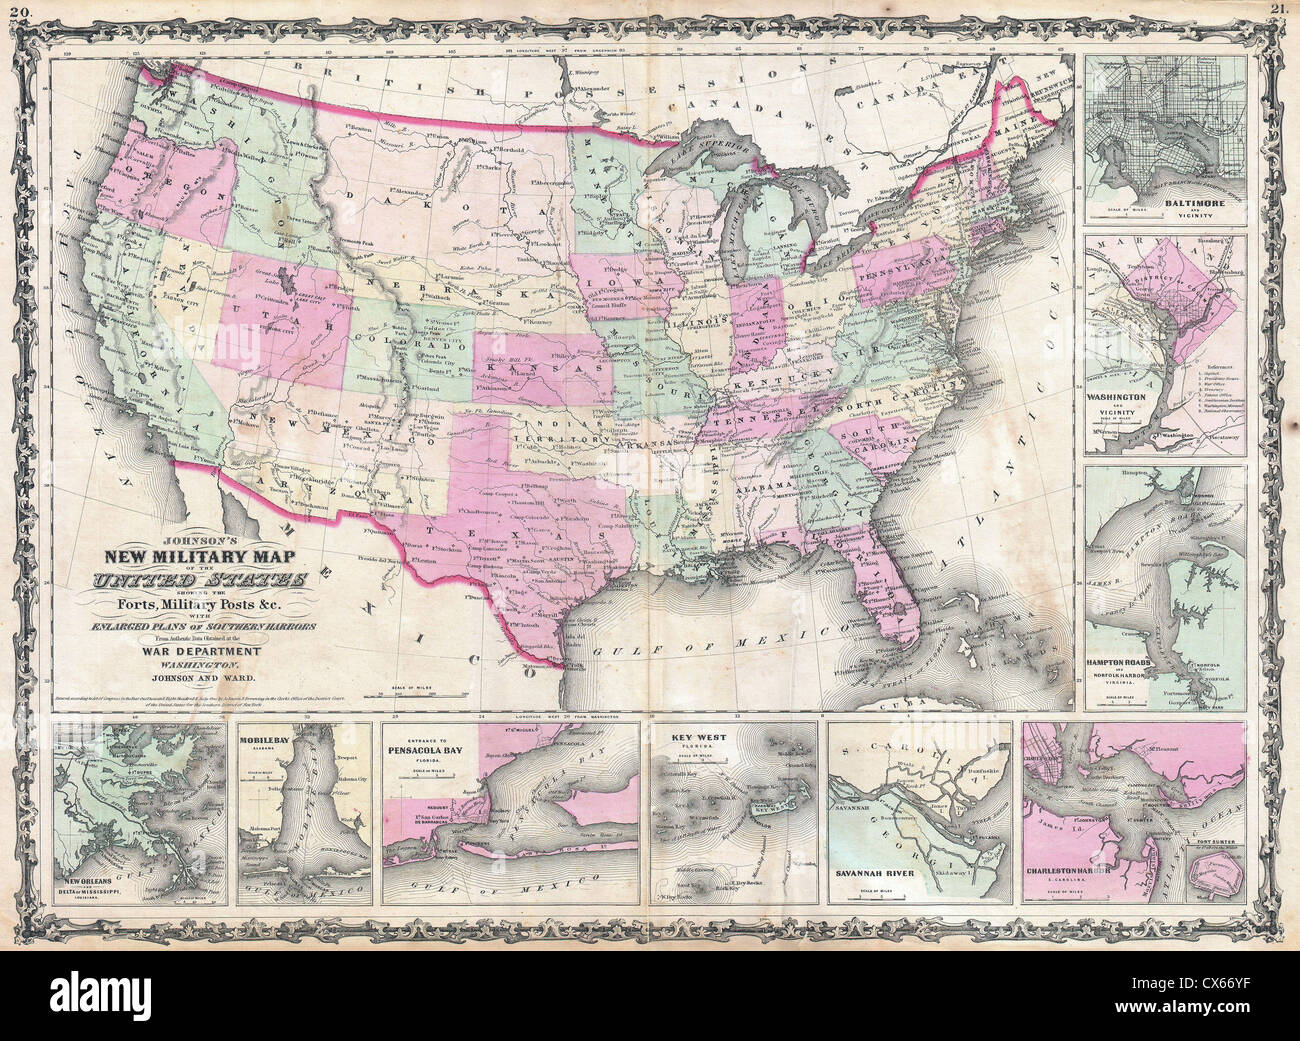 United States Civil War Map Stock Photos & United States Civil War ...